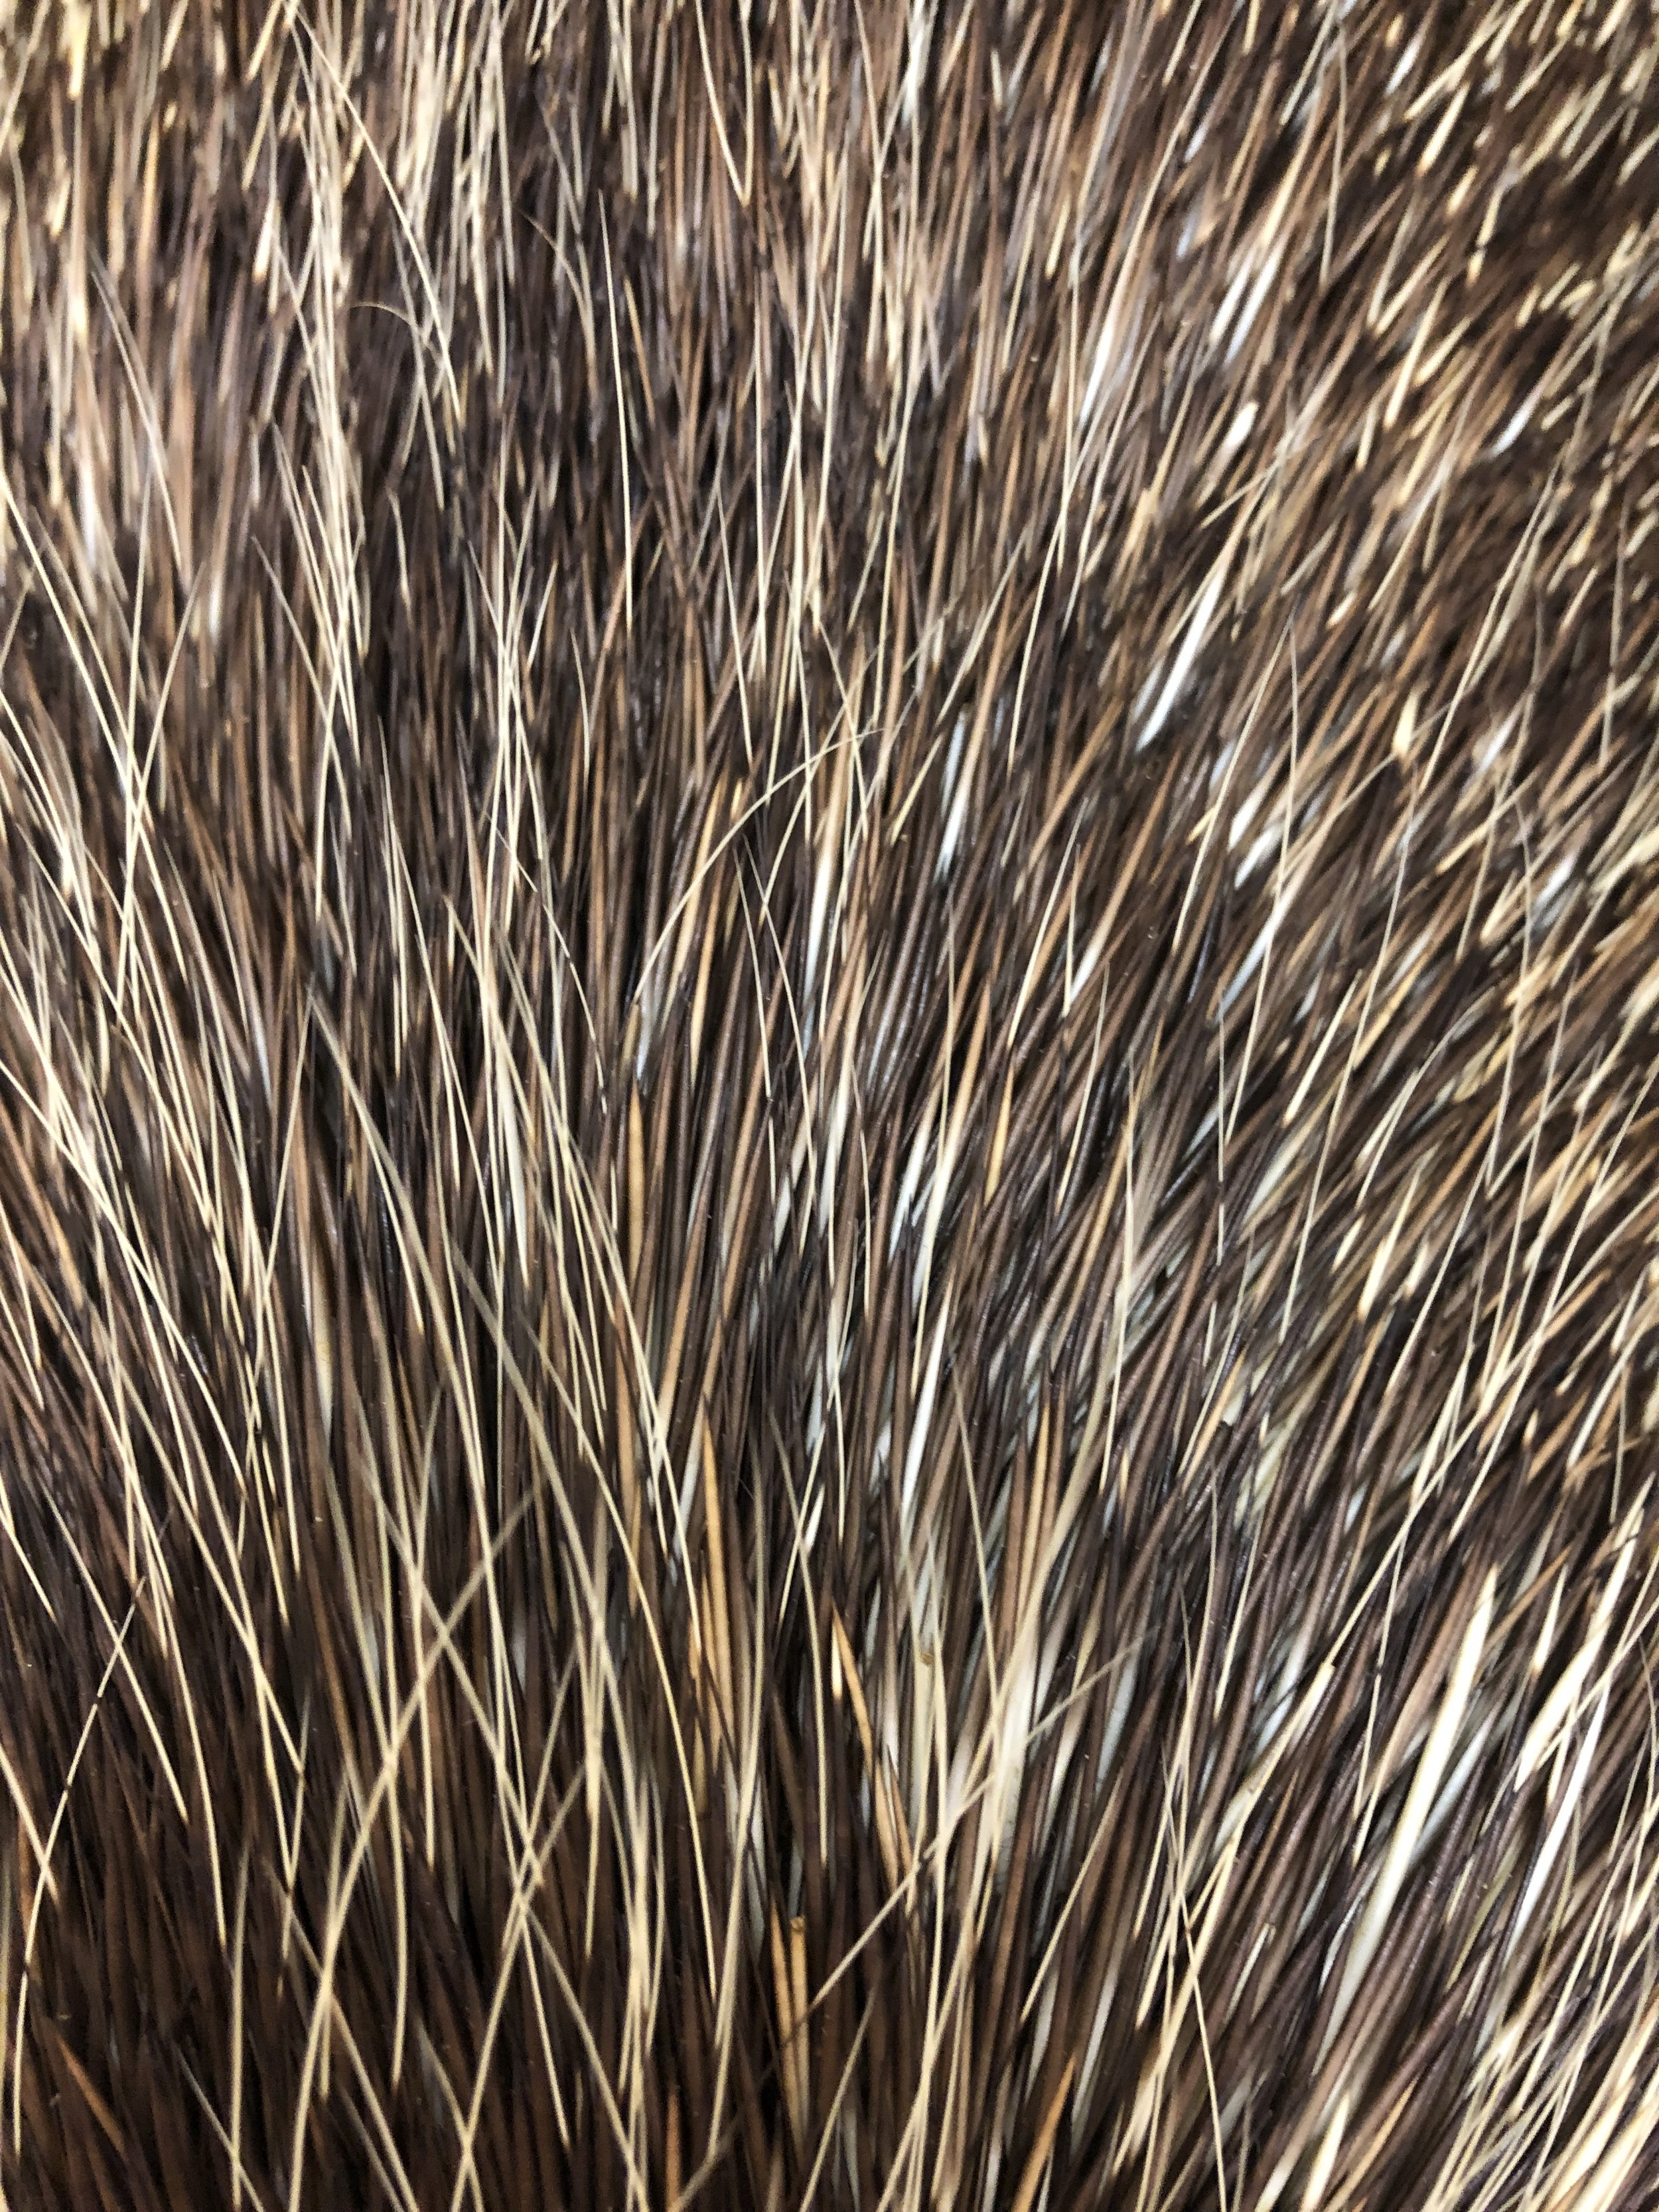 Porcupine fur showing a range of colors